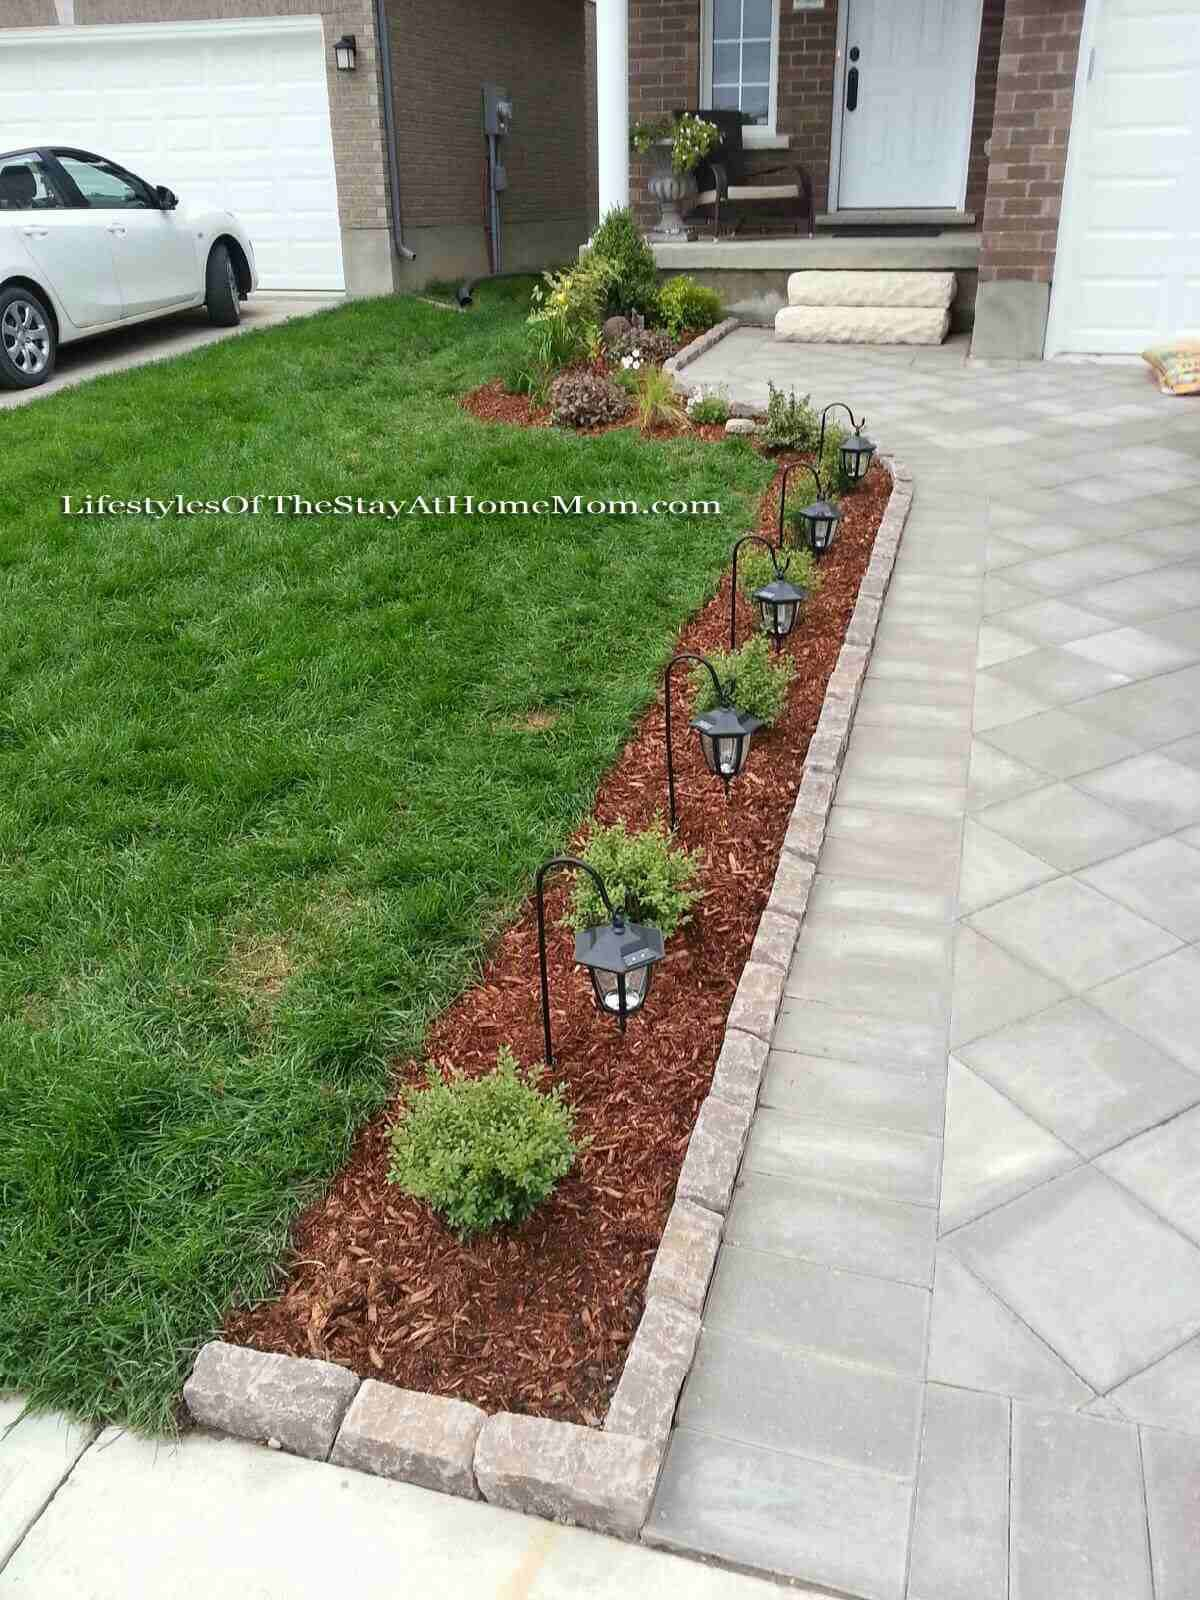 30 Amazing Diy Front Yard Landscaping Ideas And Designs For 2019 Front Yard Landscaping Design Front Yard Landscaping Backyard Landscaping